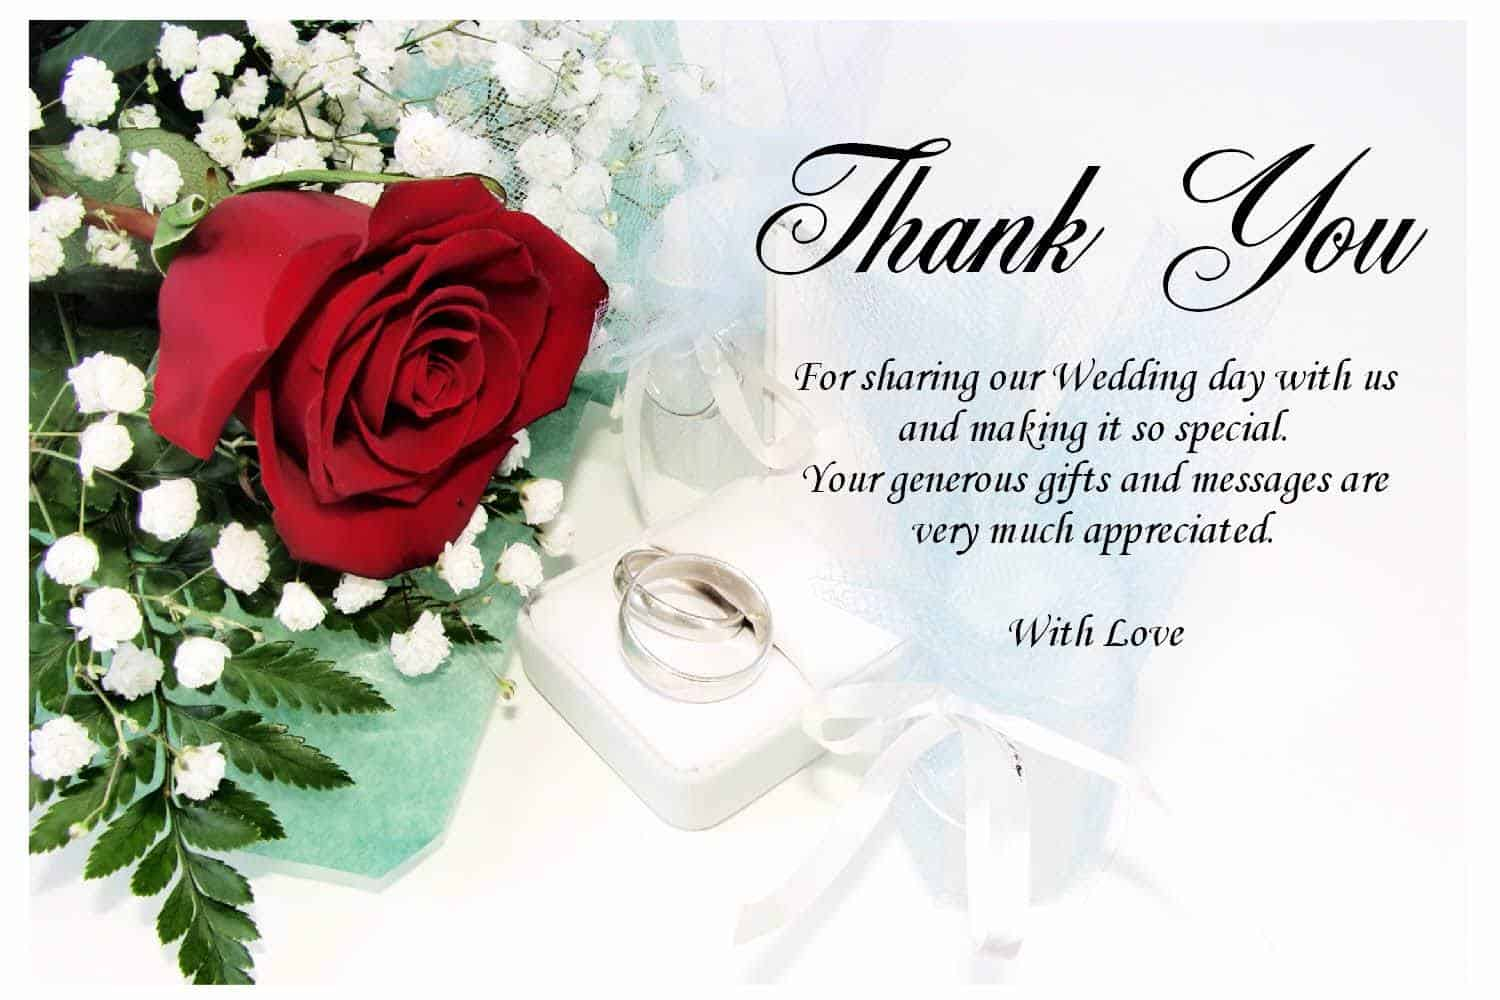 Wedding Gift Card Thank You : Wedding Thank You Gifts And Messages